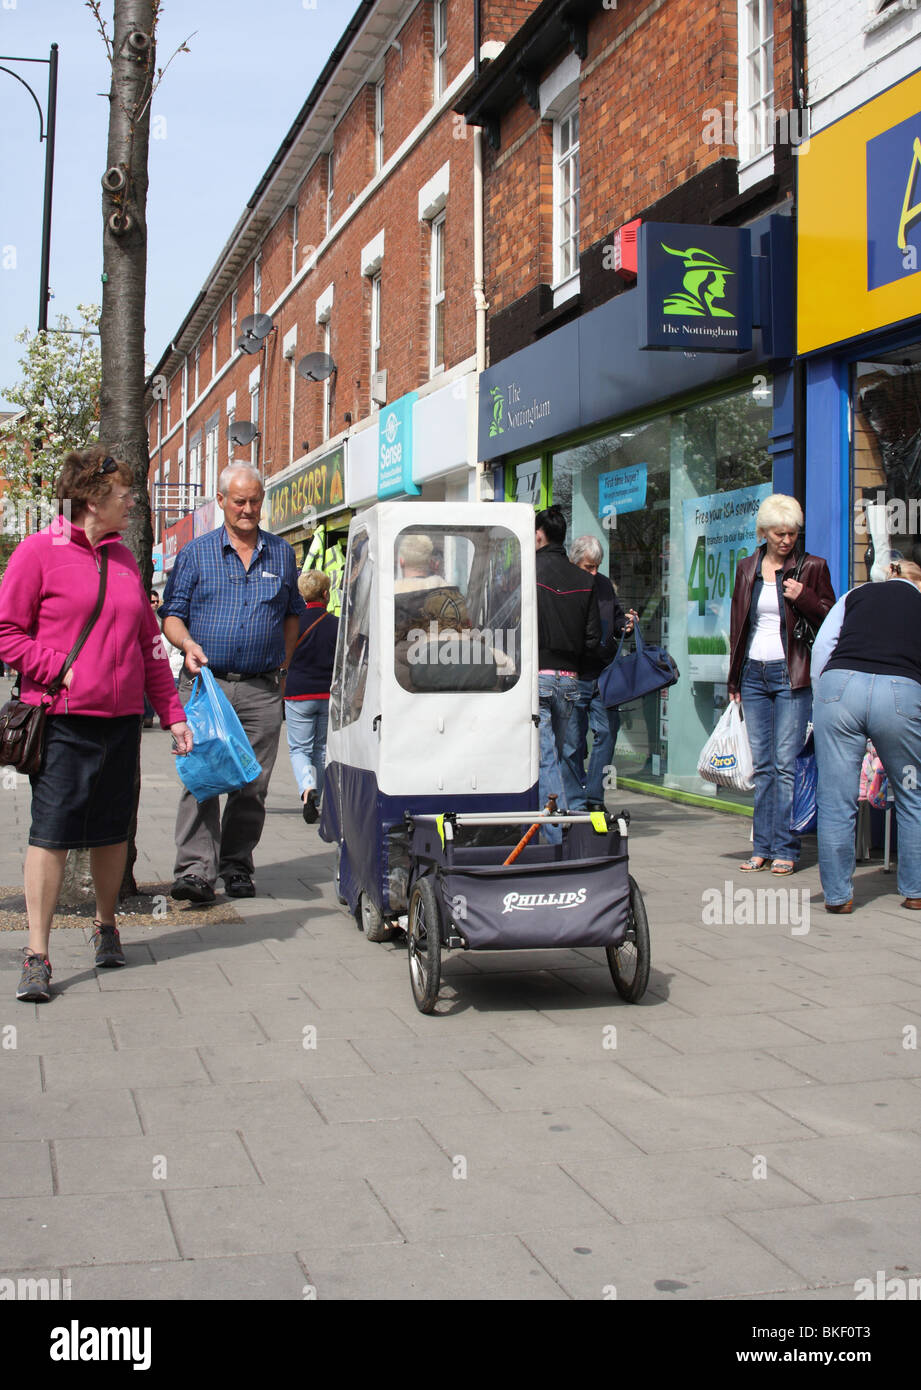 A mobility scooter on a busy street in the U.K. - Stock Image